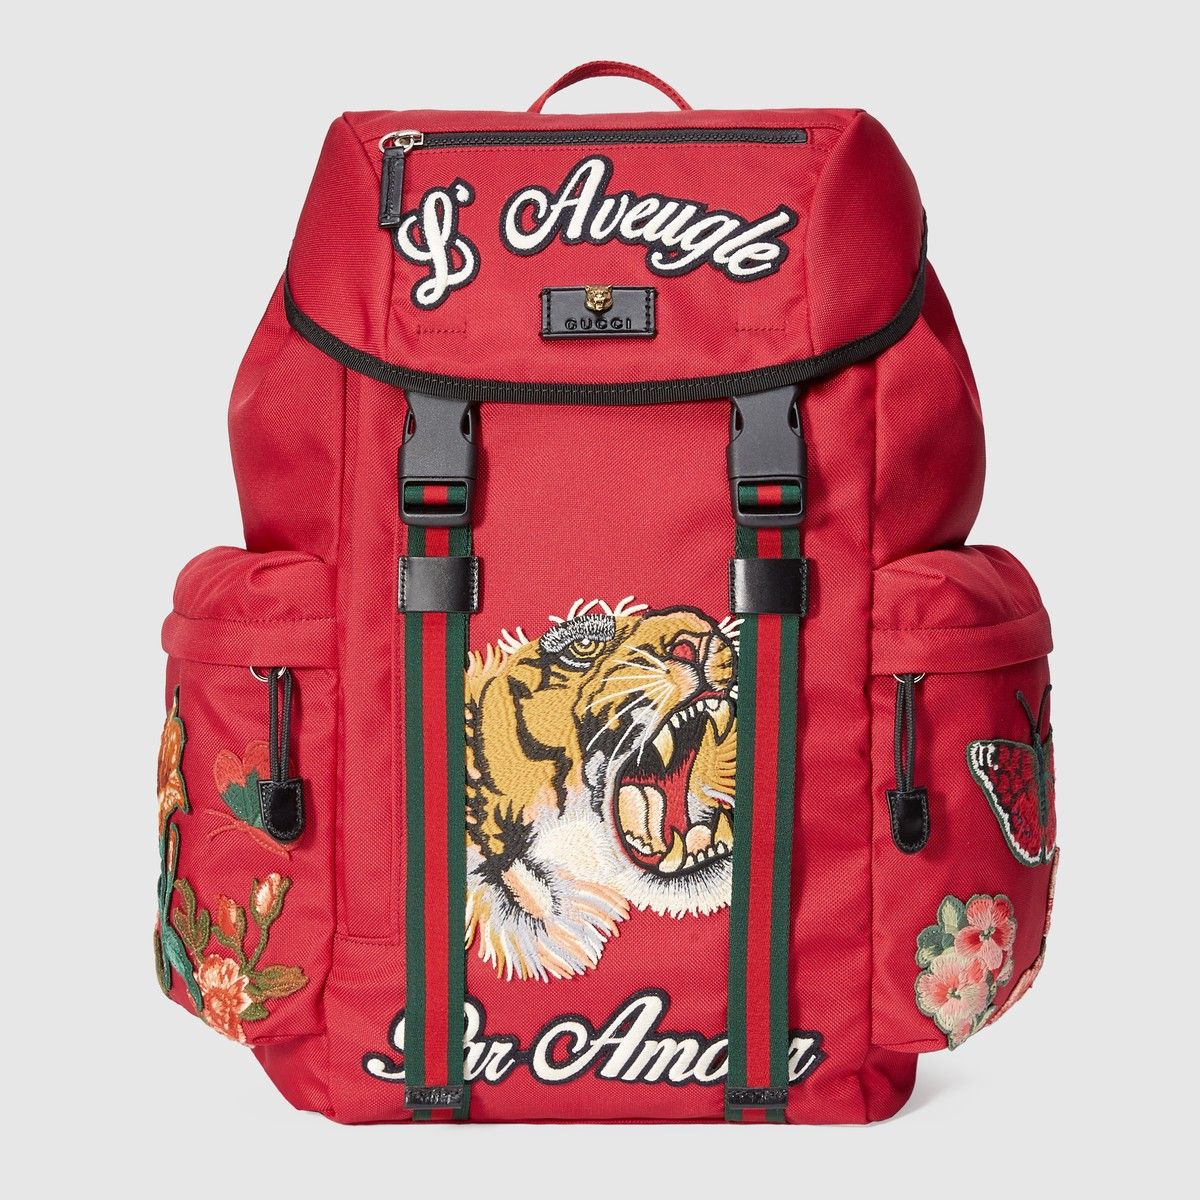 bda87e4885f GUCCI Backpack With Embroidery - Red Techno Canvas.  gucci  bags  leather   lining  canvas  nylon  backpacks